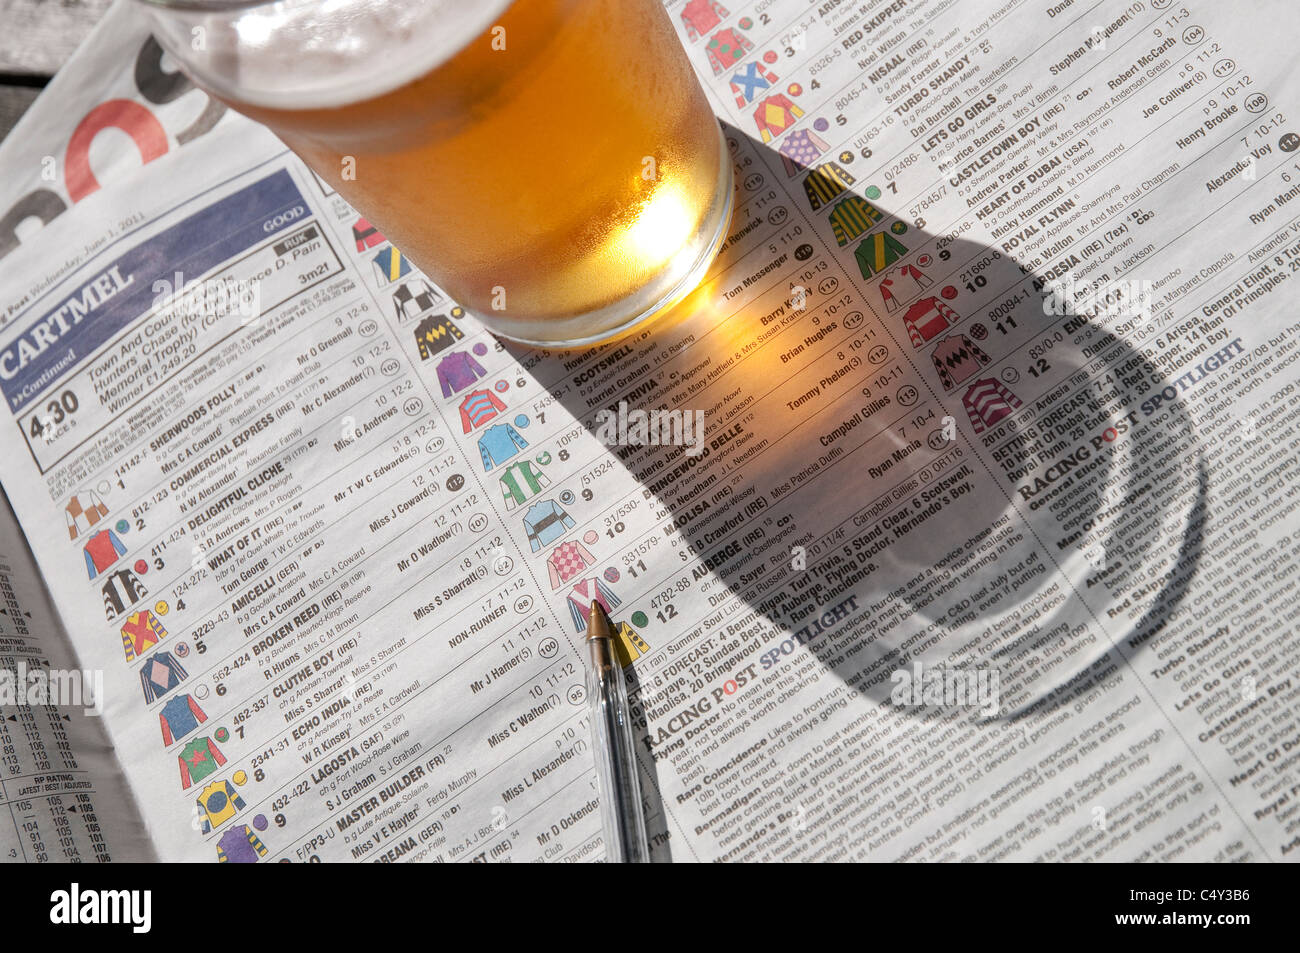 horse racing post newspaper and pint of beer - Stock Image